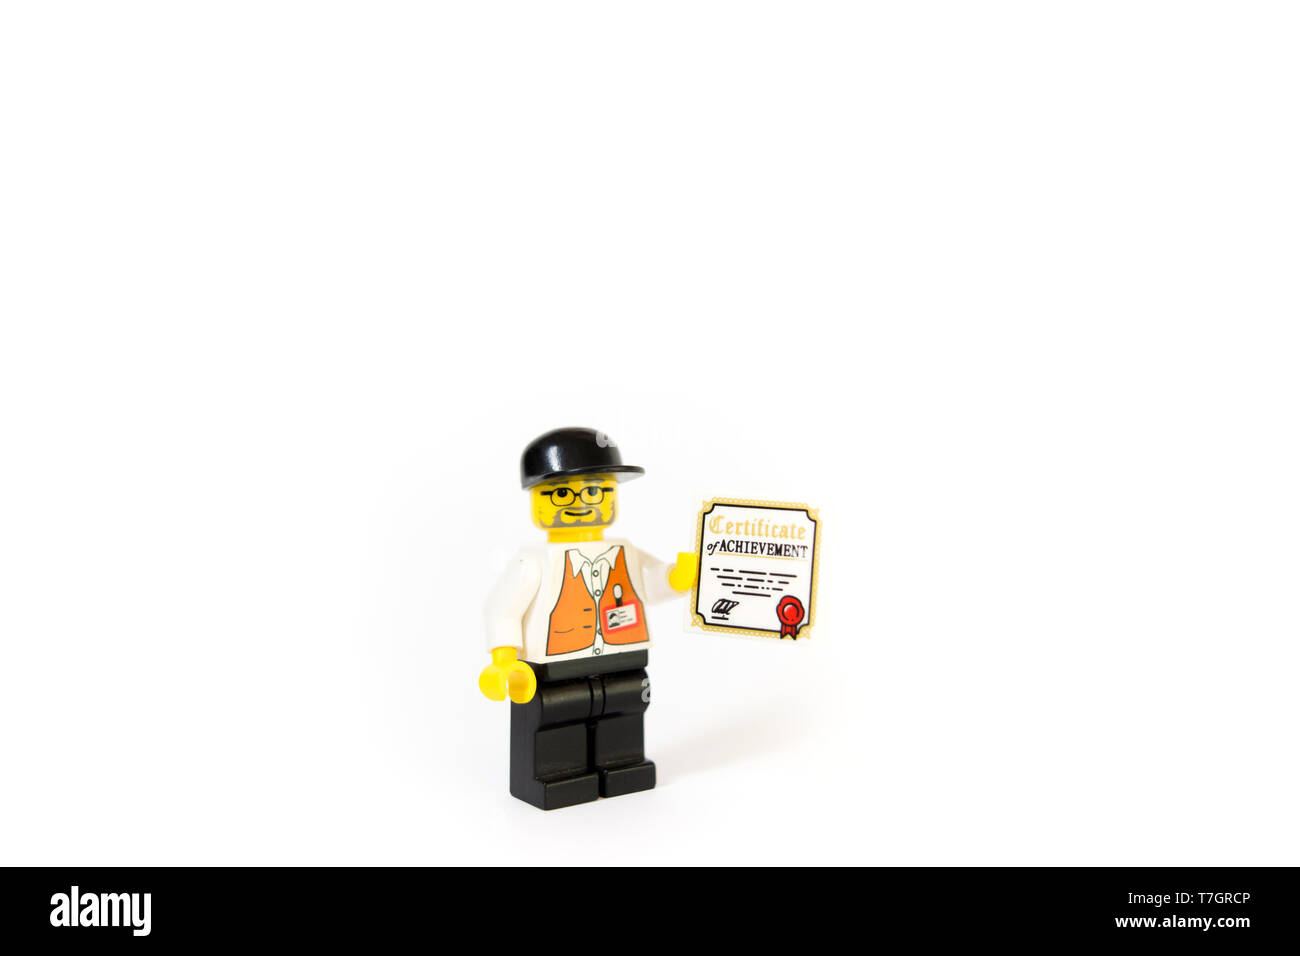 This photo of a LEGO Film Director progressing his career with his certificate of achievement. Movie Director career progression. - Stock Image